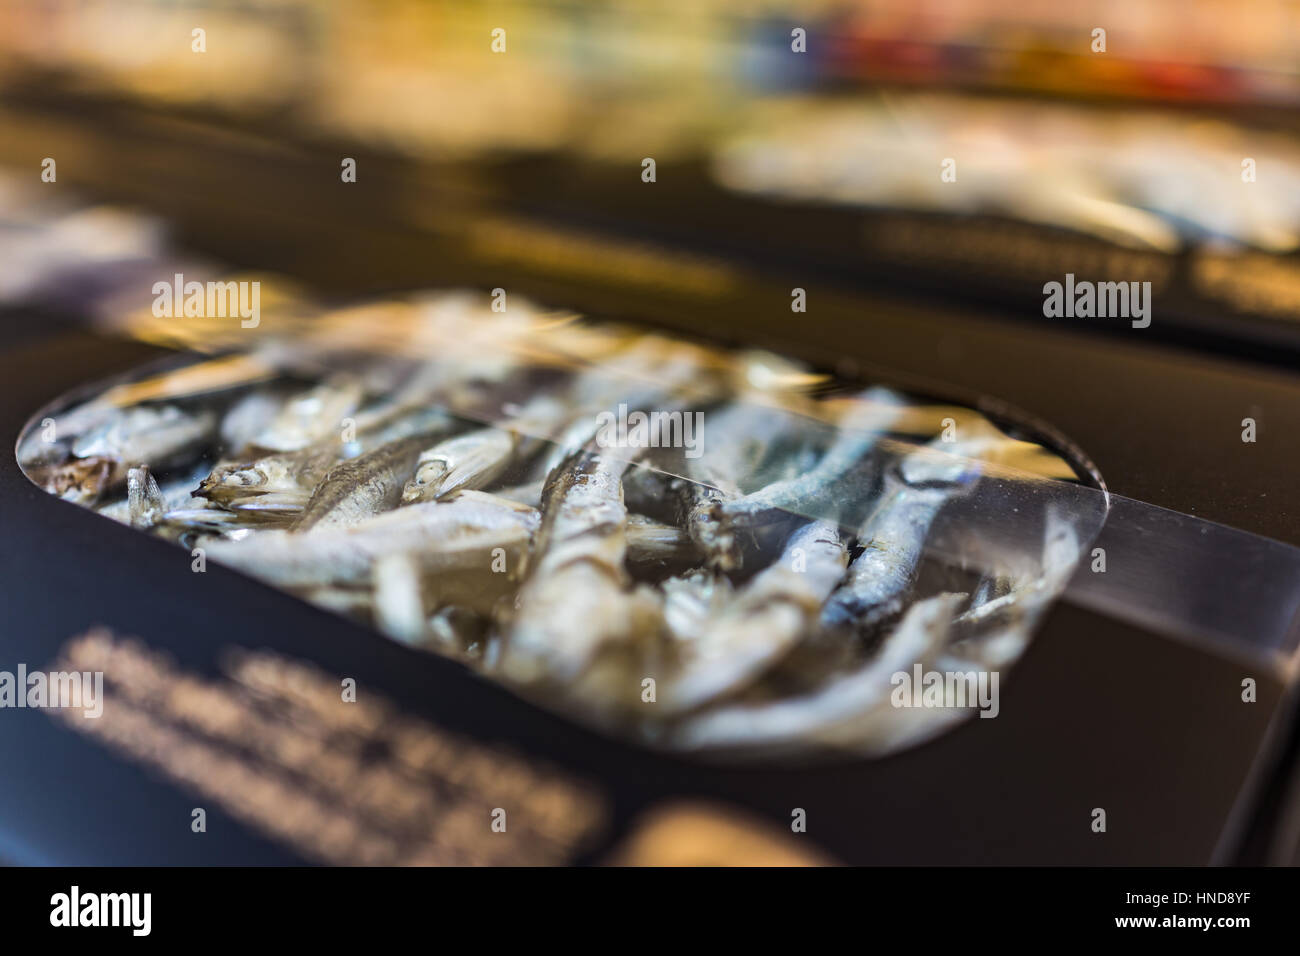 Macro closeup of box with dried anchovies - Stock Image